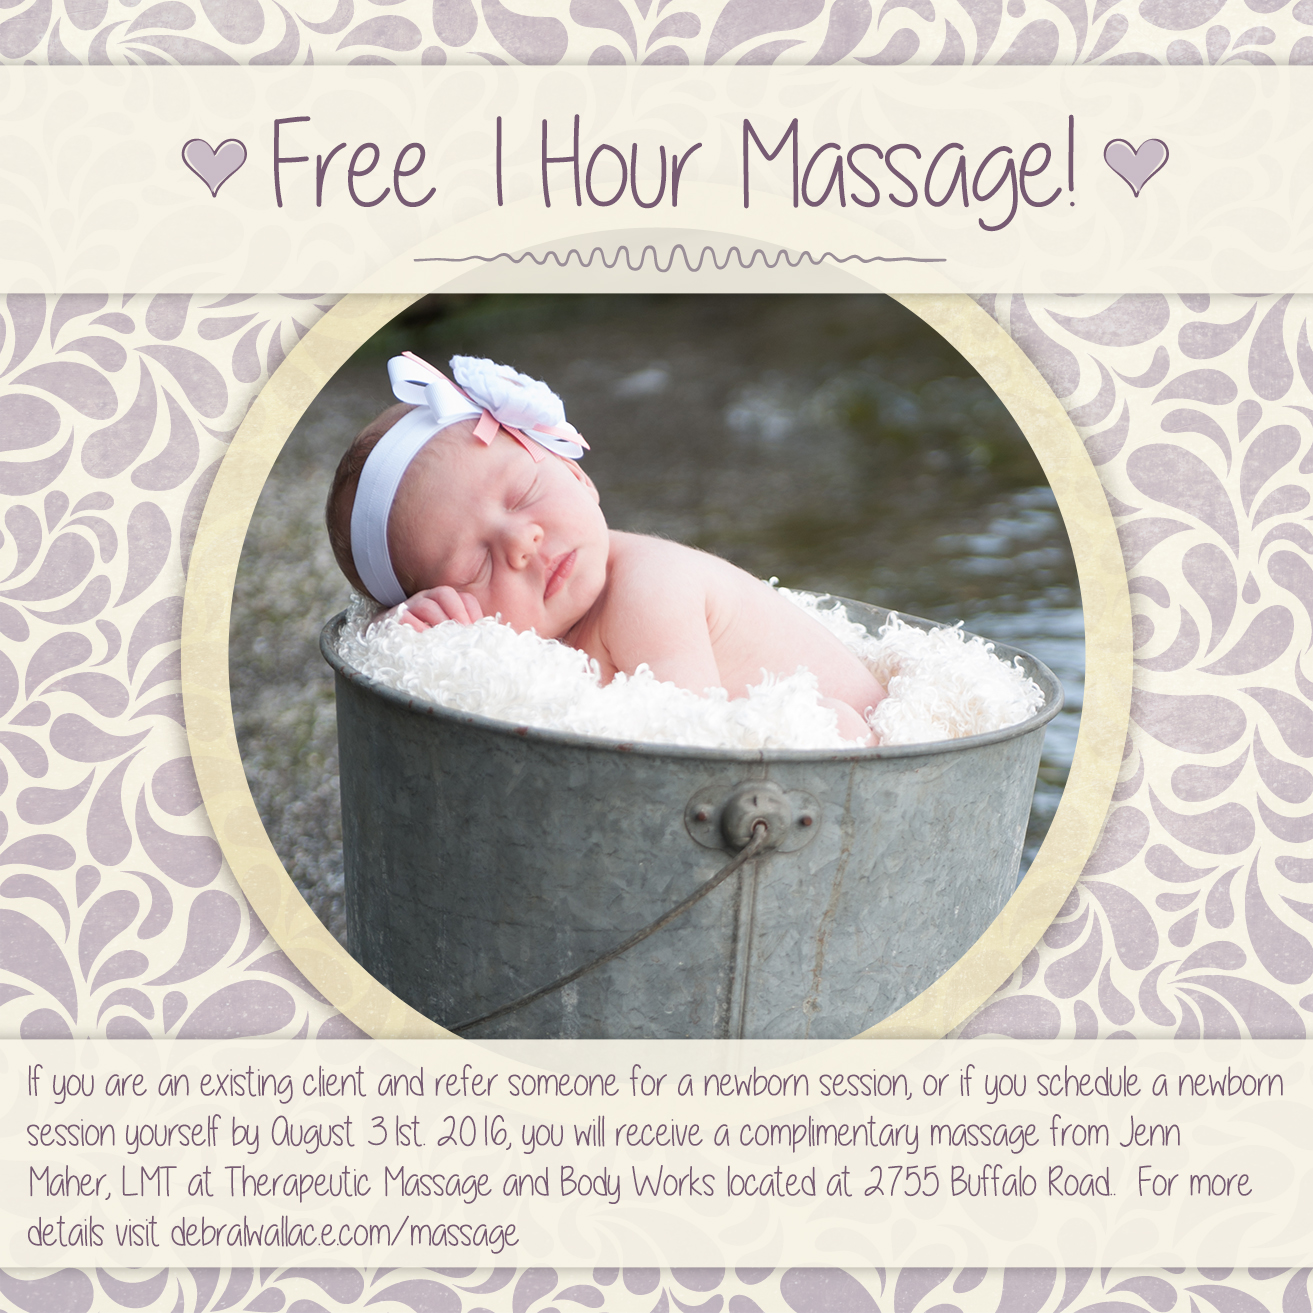 free one hour massage with your newborn session